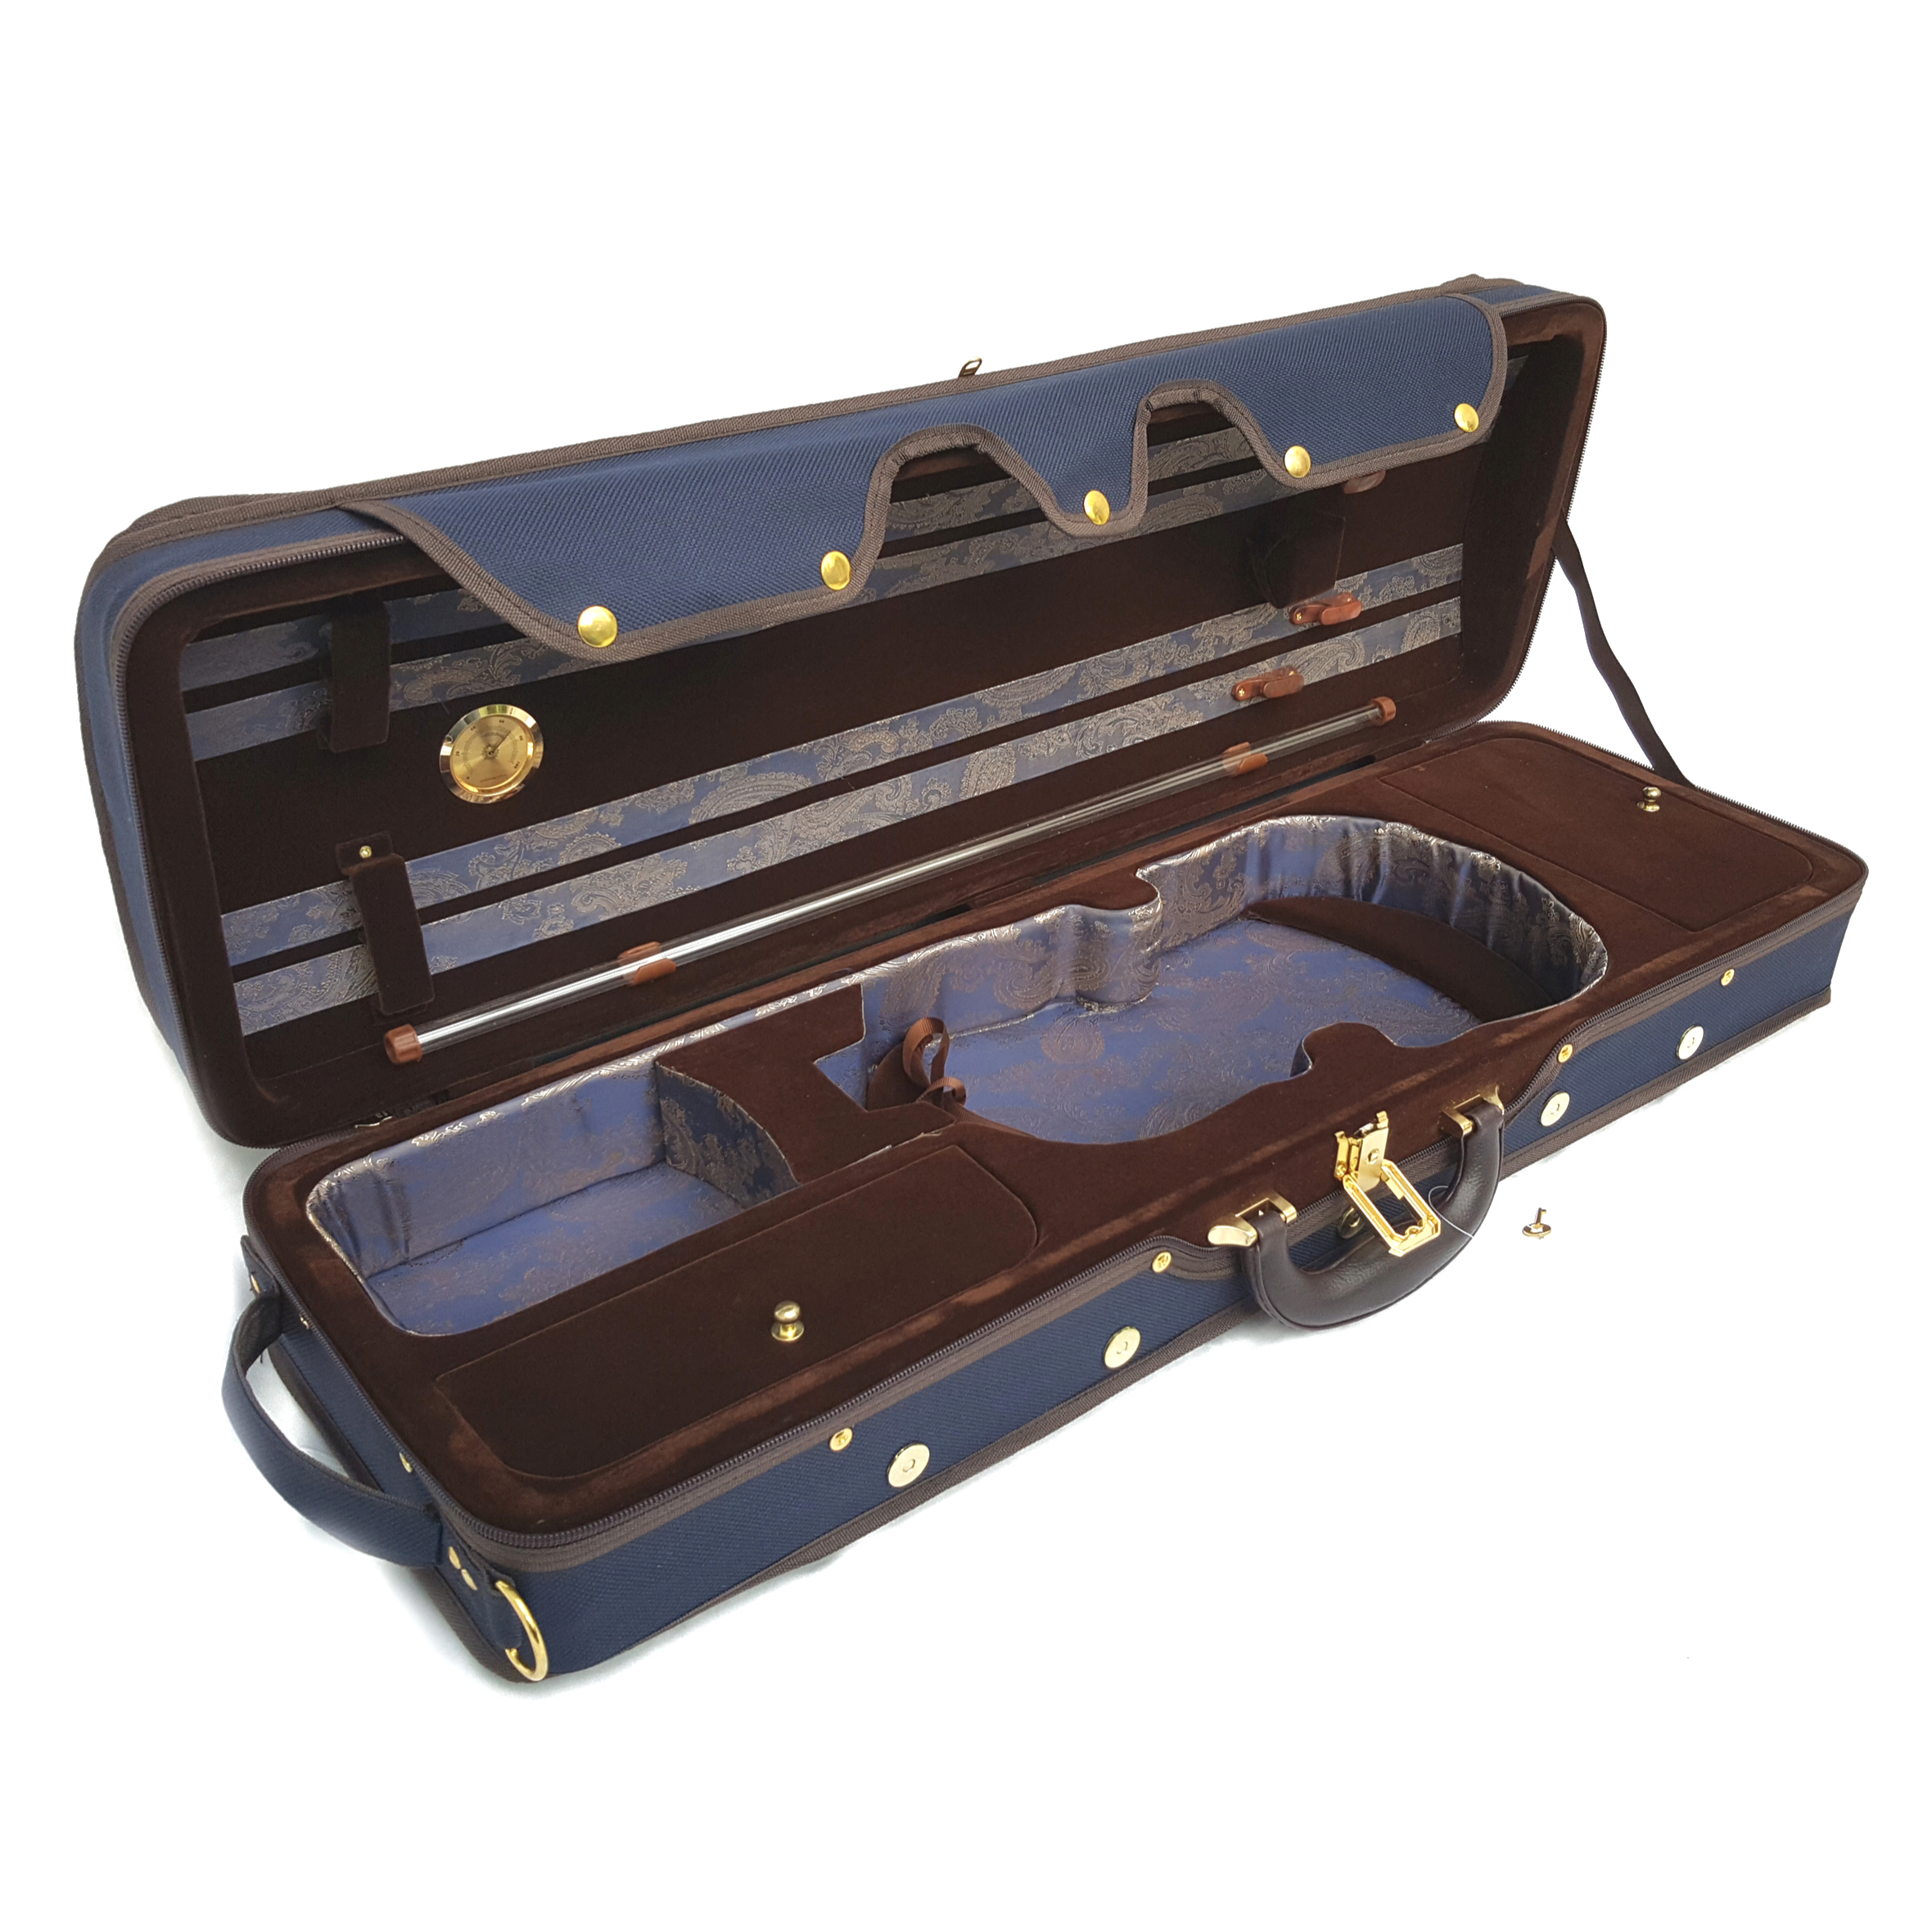 ENDEAVOUR 'advanced' oblong lightweight violin case